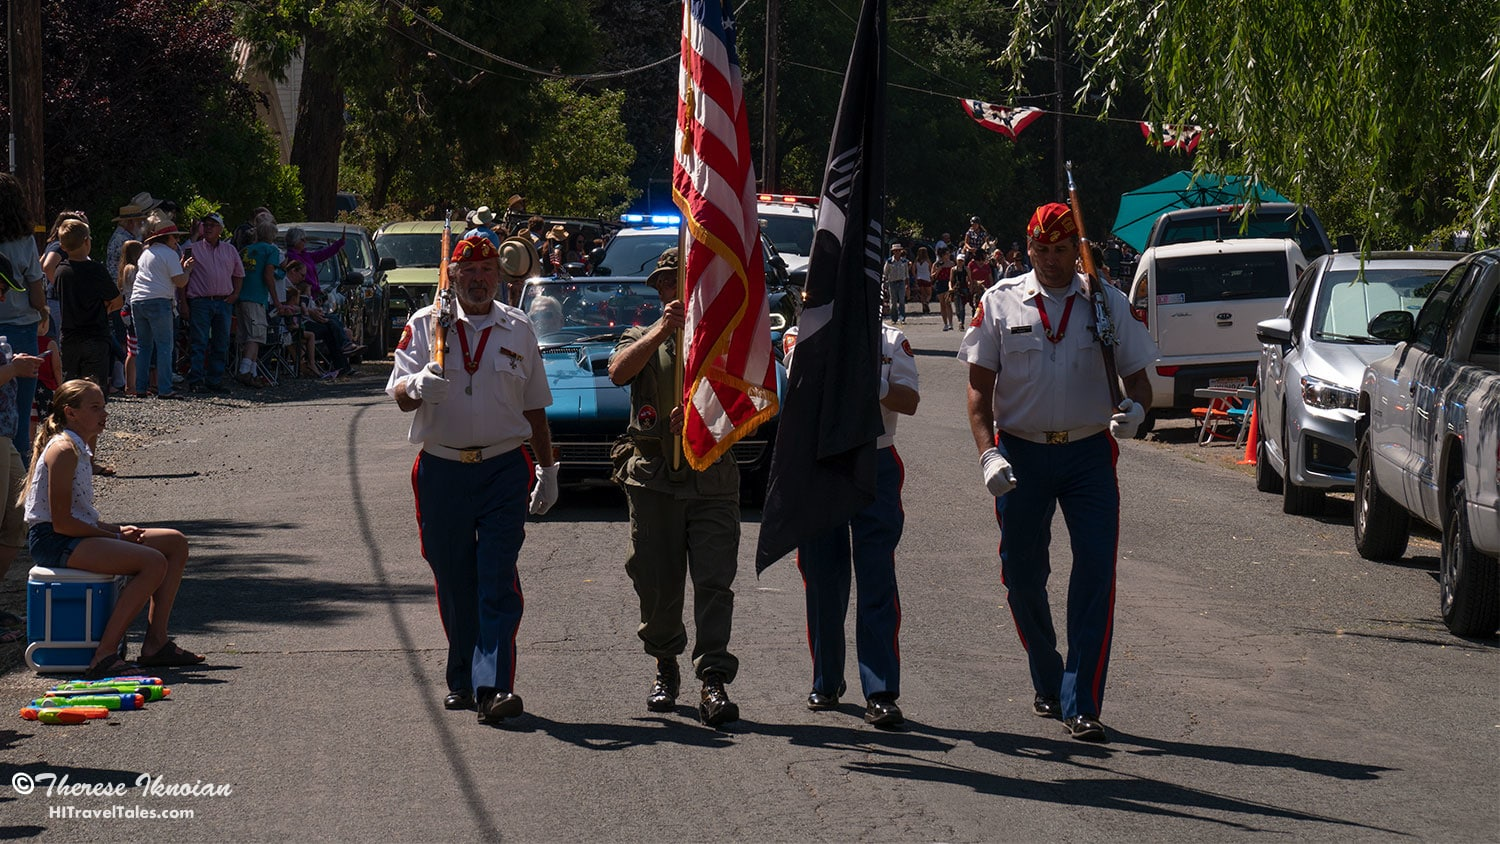 Like most July 4th parades, the Dutch Flat 4th of July parade starts on a serious note with a color guard - and no one sprays water on them out of respect!